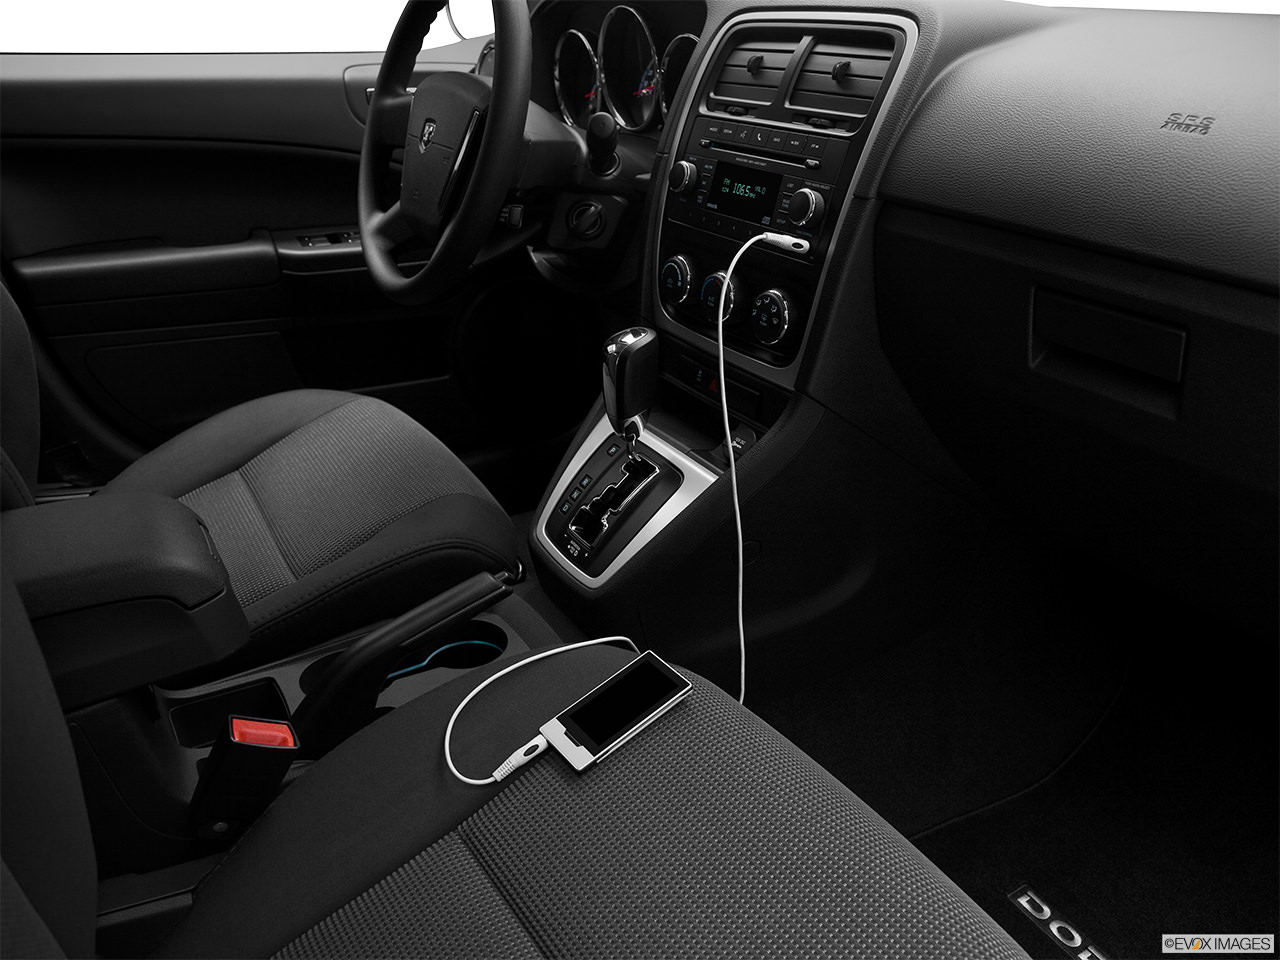 Dodge Dakota 2011 interior